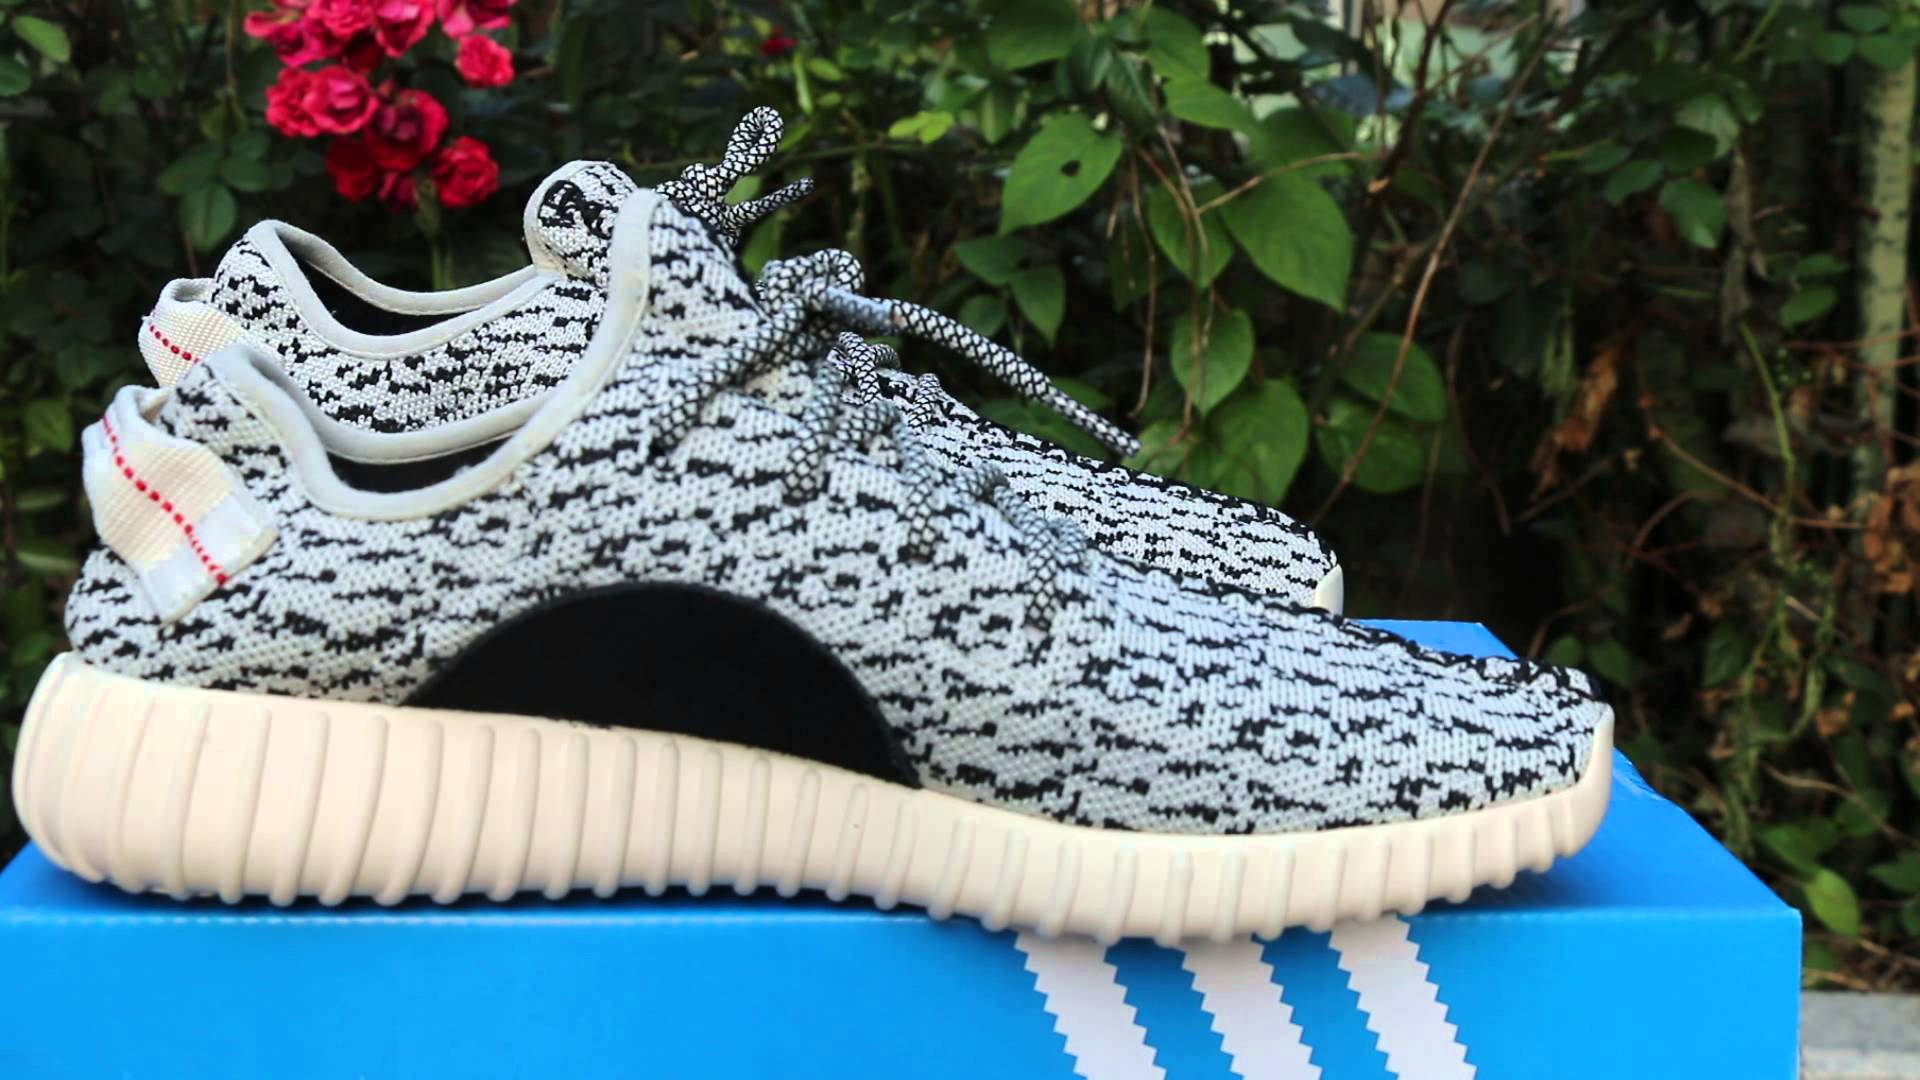 Adidas YEEZY BOOST 350 Moonrock Review